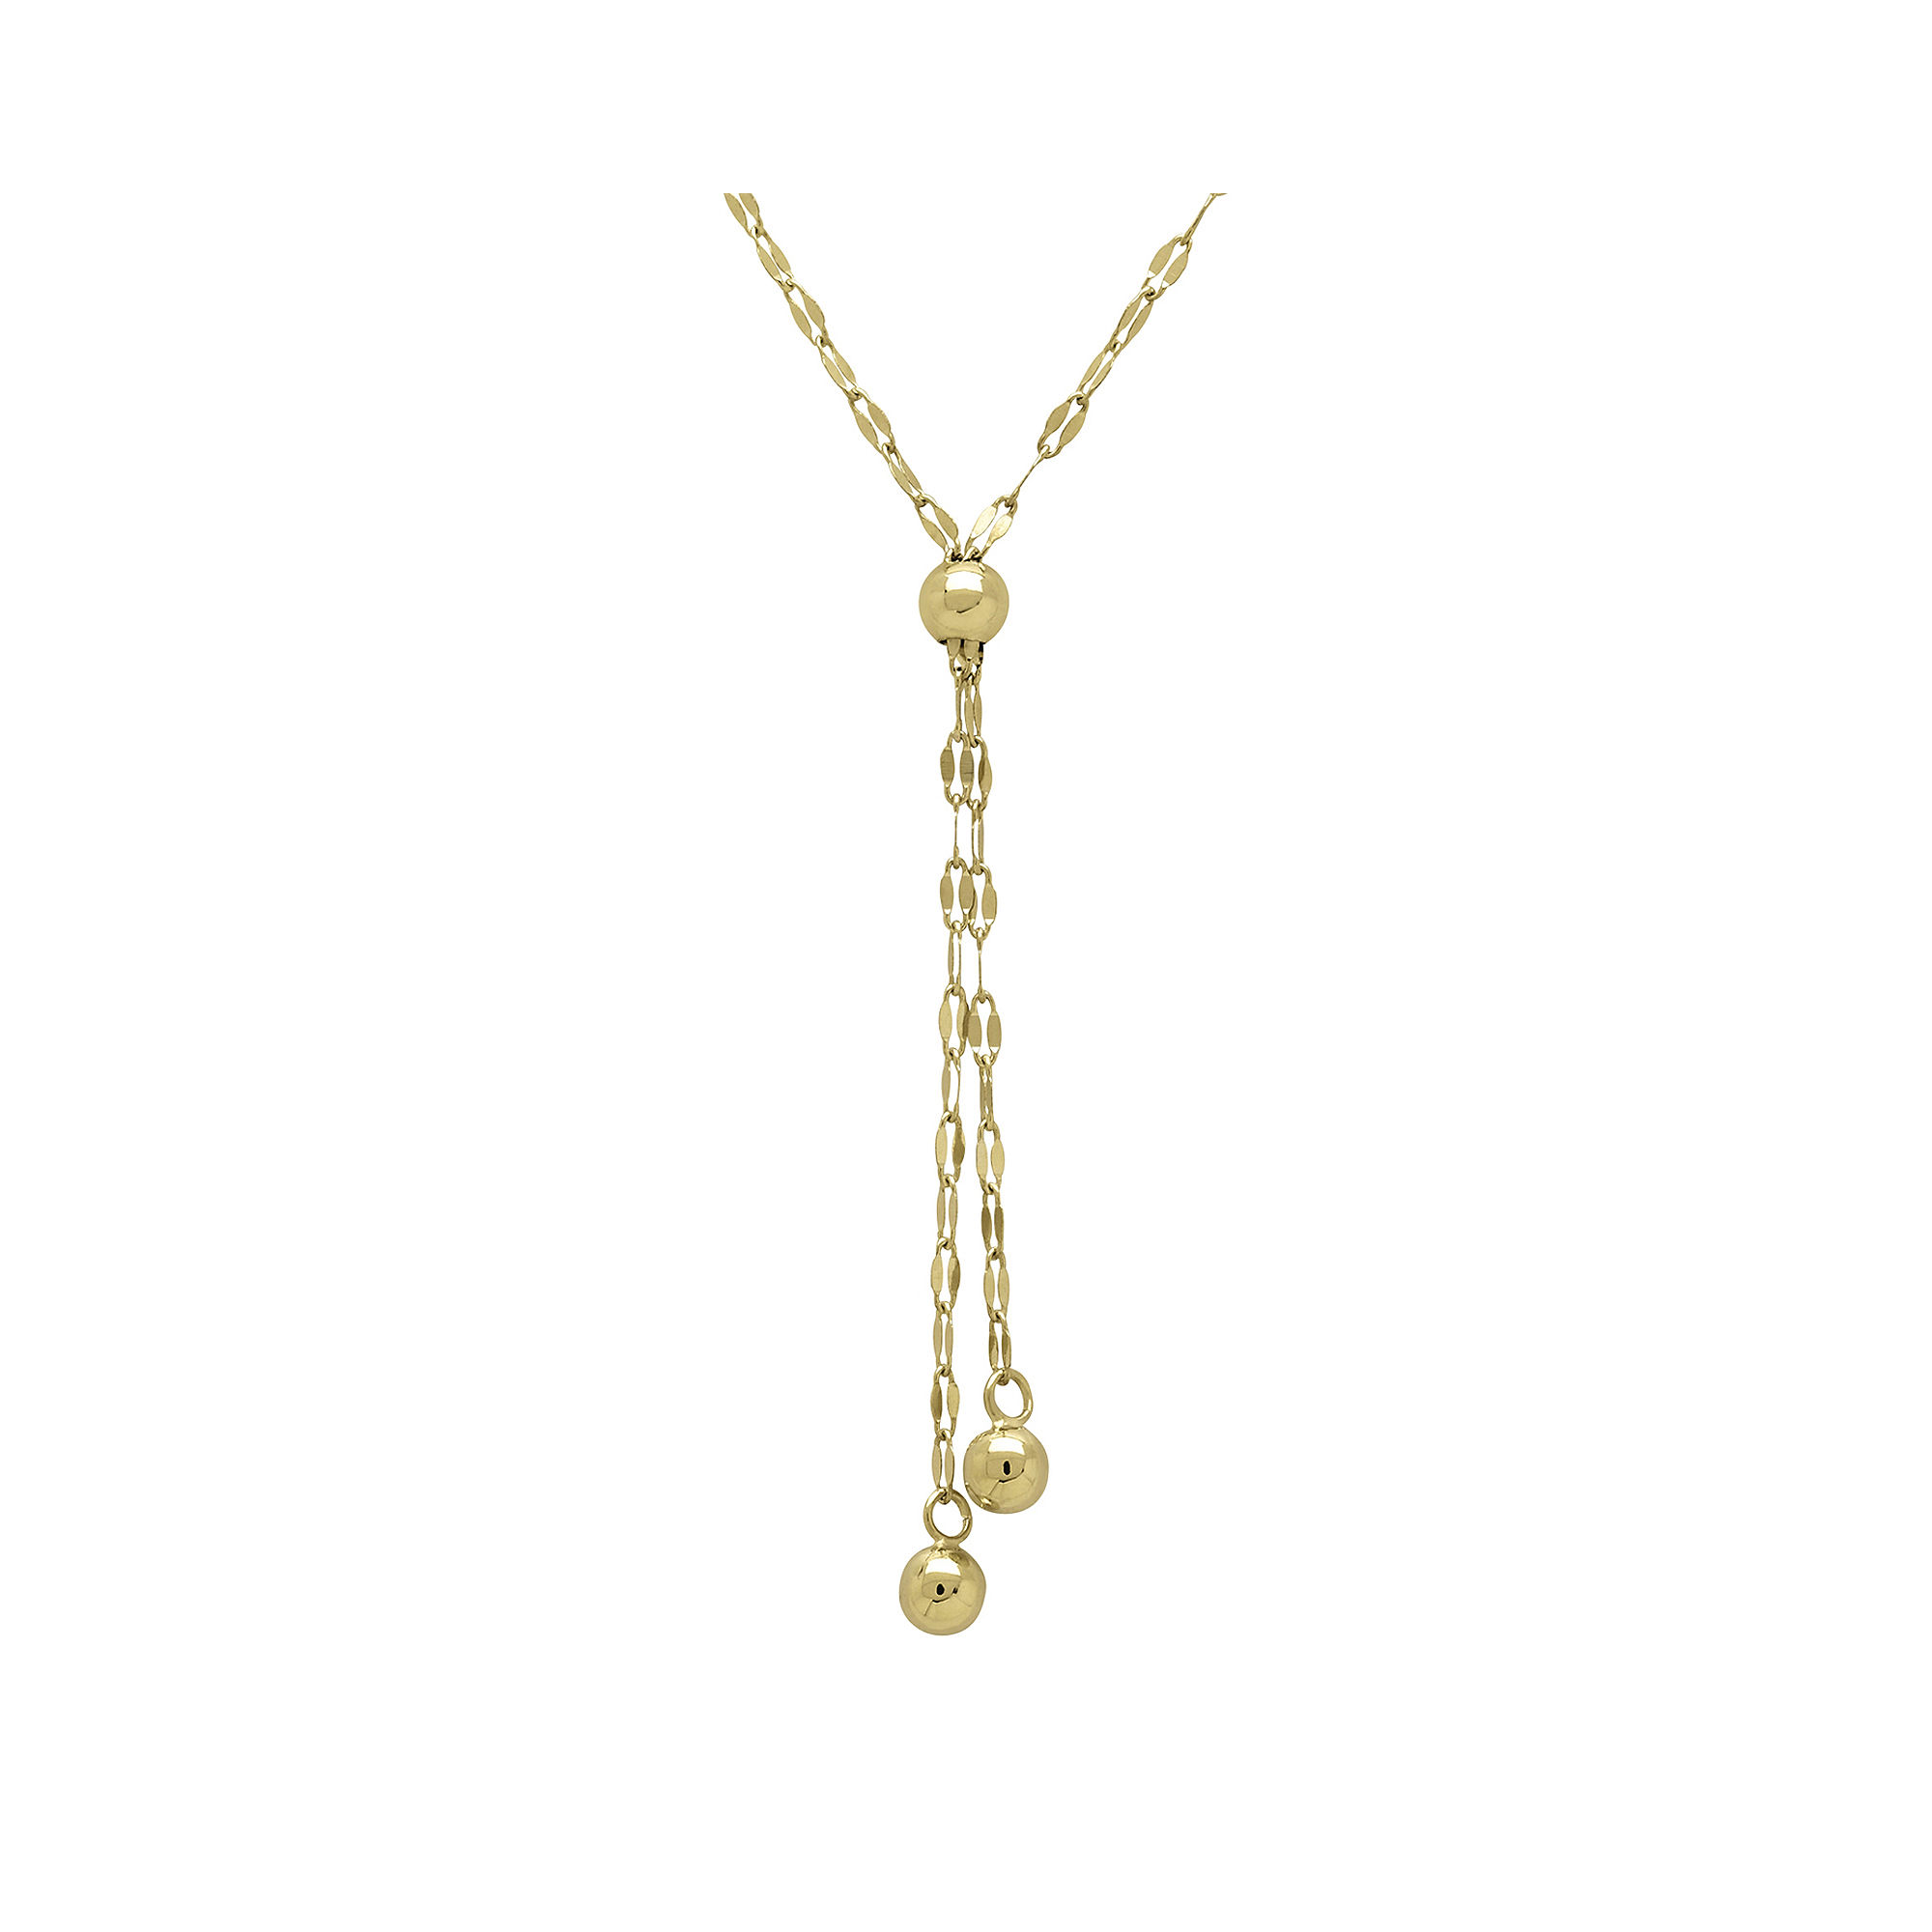 14K Yellow Gold Lariat with Double Strand Bead Necklace